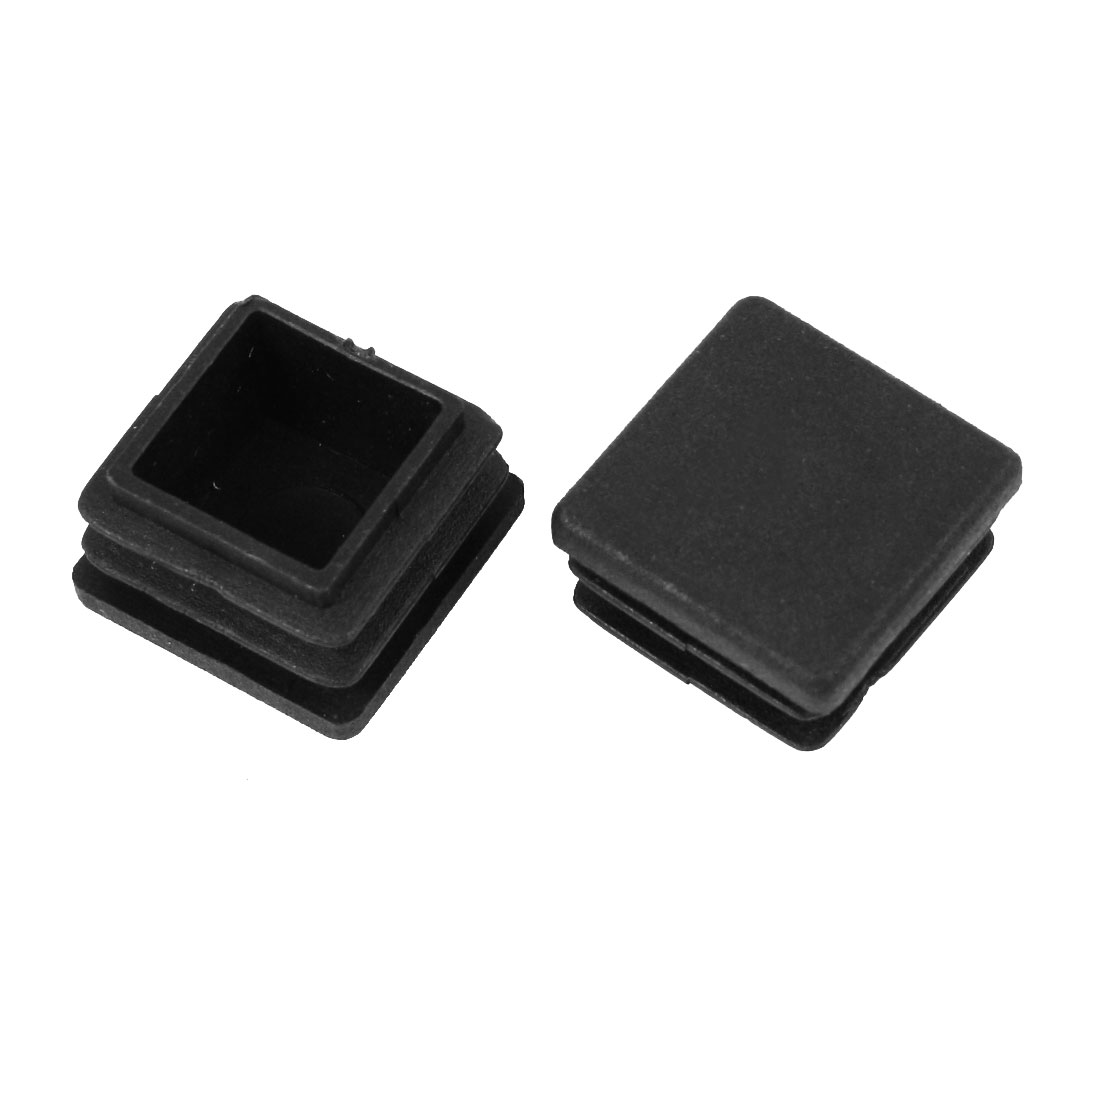 2 Pieces Black Plastic Square Blanking End Caps Tubing Tube Inserts 20mm x 20mm